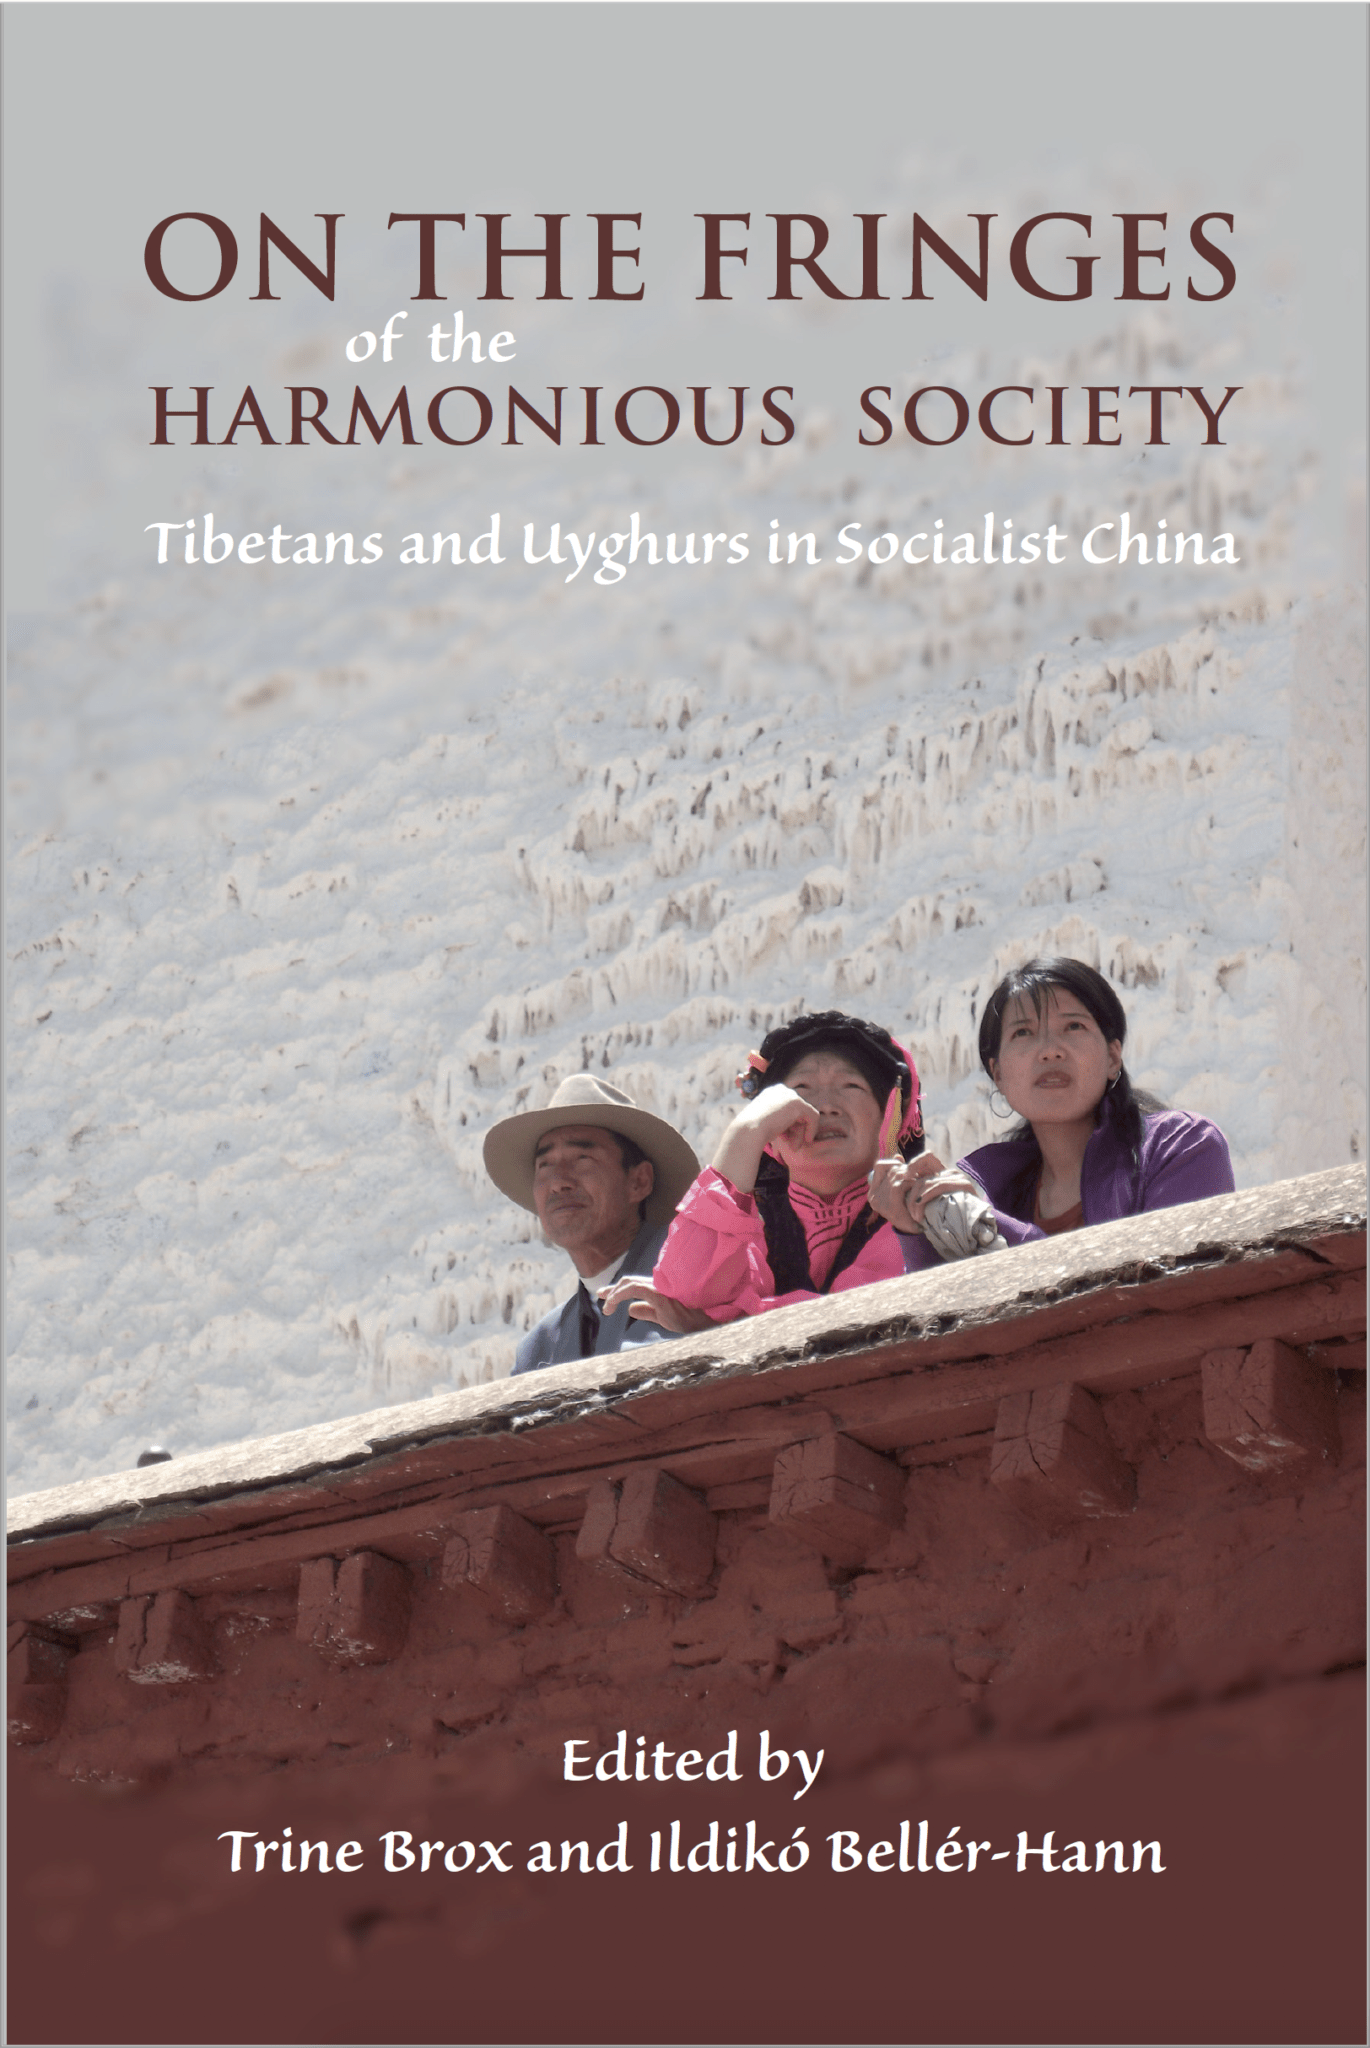 Screenshot 2020 02 01 at 14.44.33 - On the Fringes of the Harmonious Society: Tibetans and Uyghurs in Socialist China